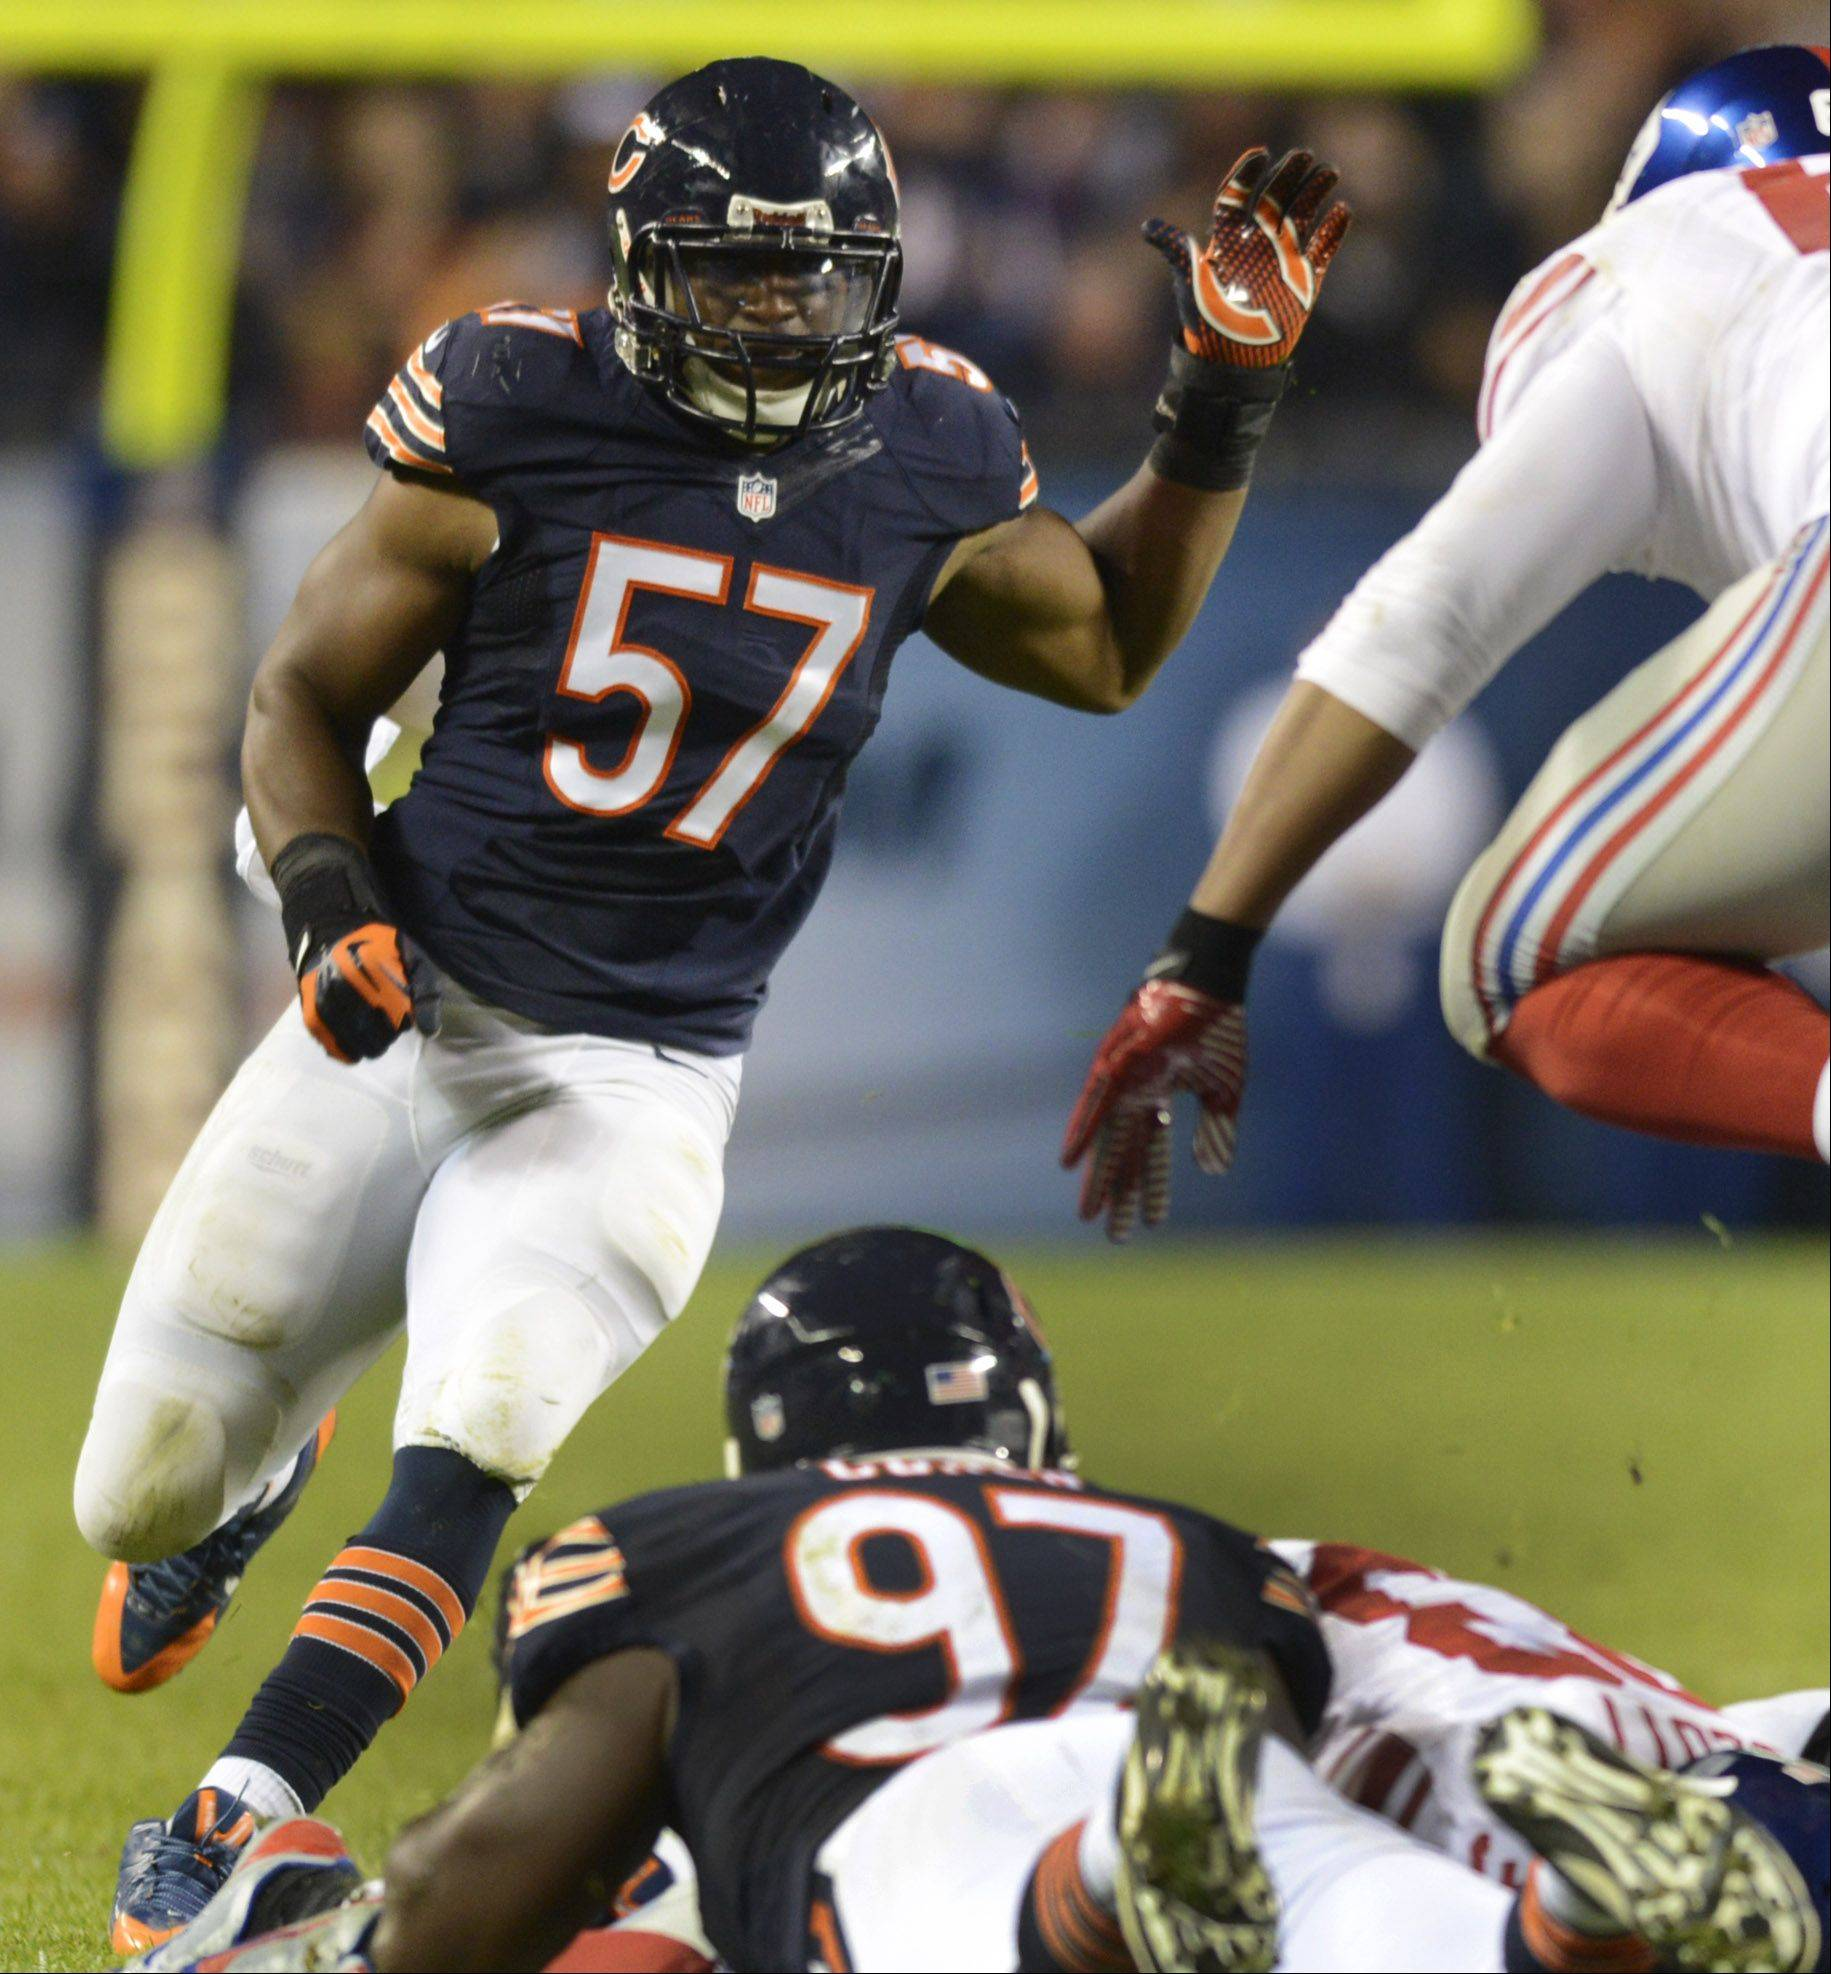 Rookie linebacker Jon Bostic (57) was pressed into duty Thursday against the New York Giants after D.J. Williams was injured. Bostic, who had been relegated to special teams, will inherit the starting job at middle linebacker now that Williams is out for the season.